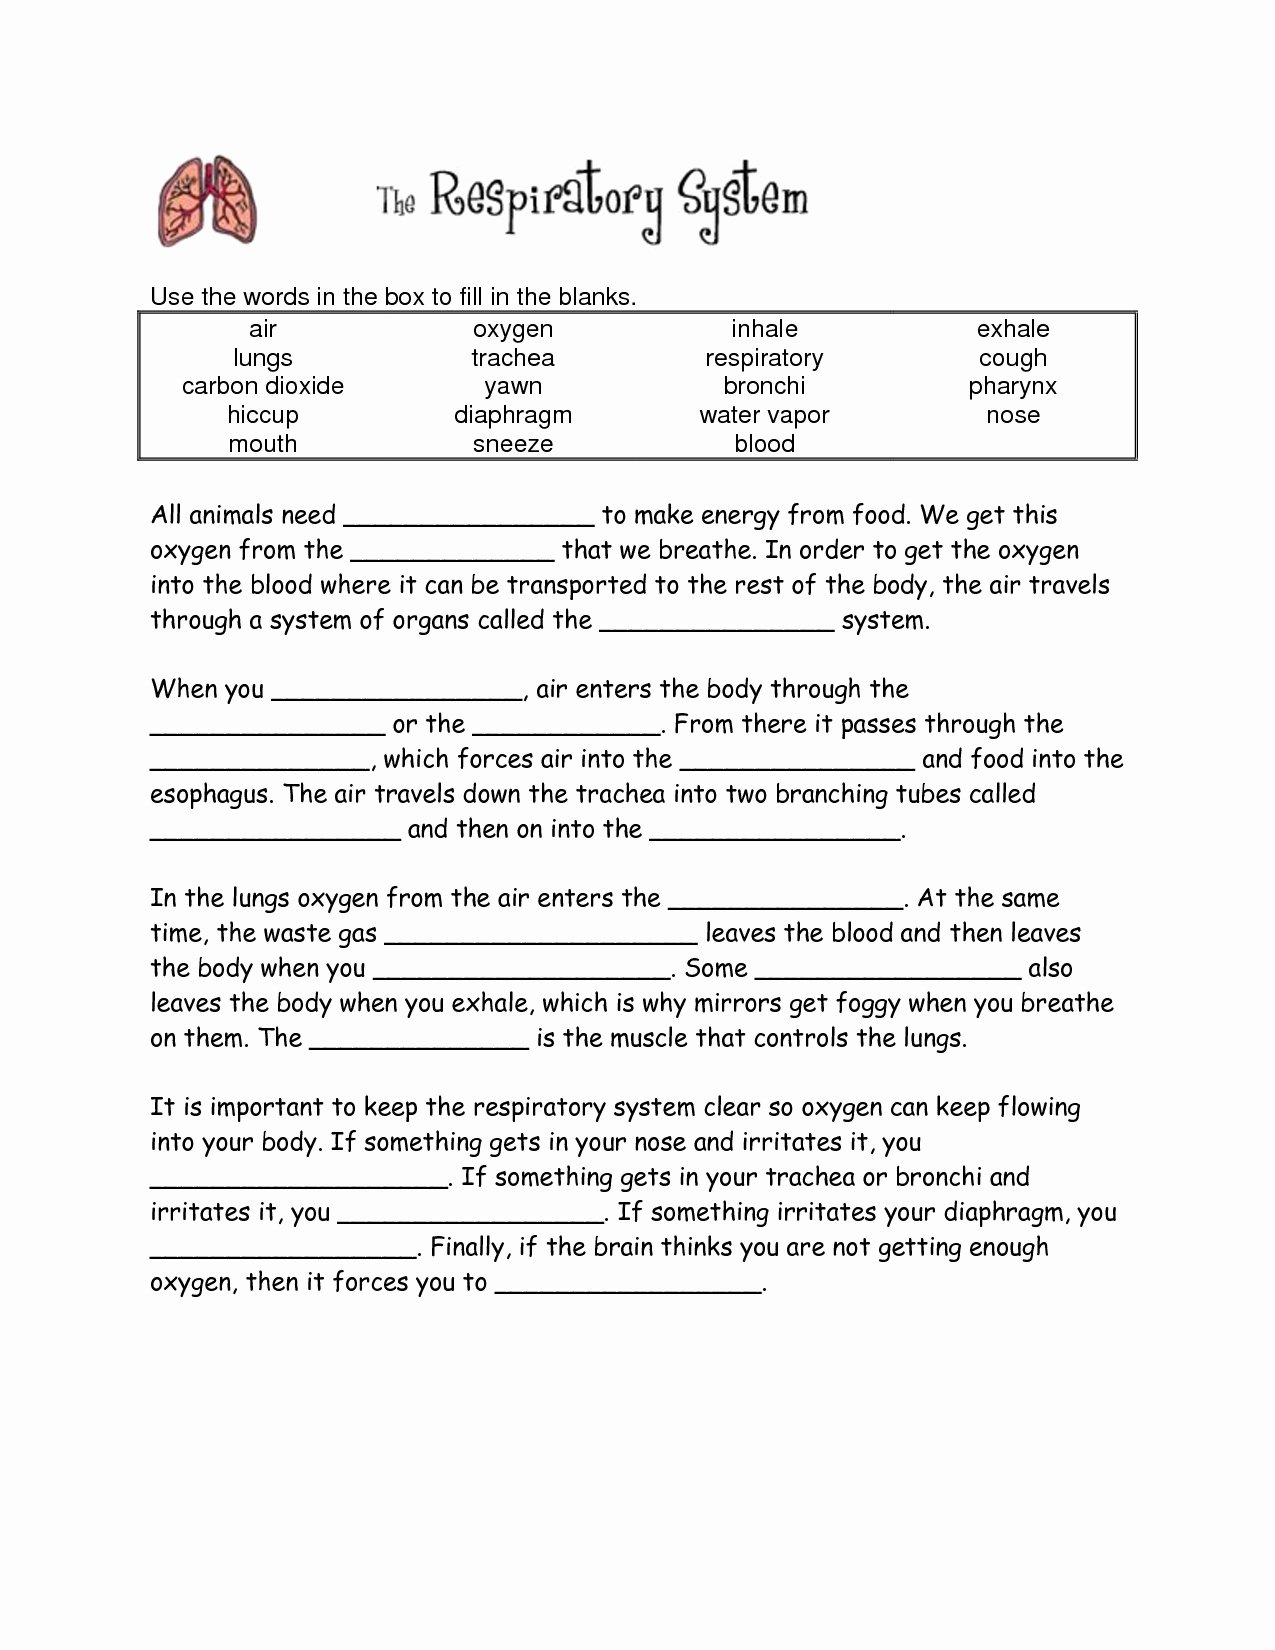 Respiratory System Worksheet Pdf Elegant Respiratory System Worksheet Answer Key the Best